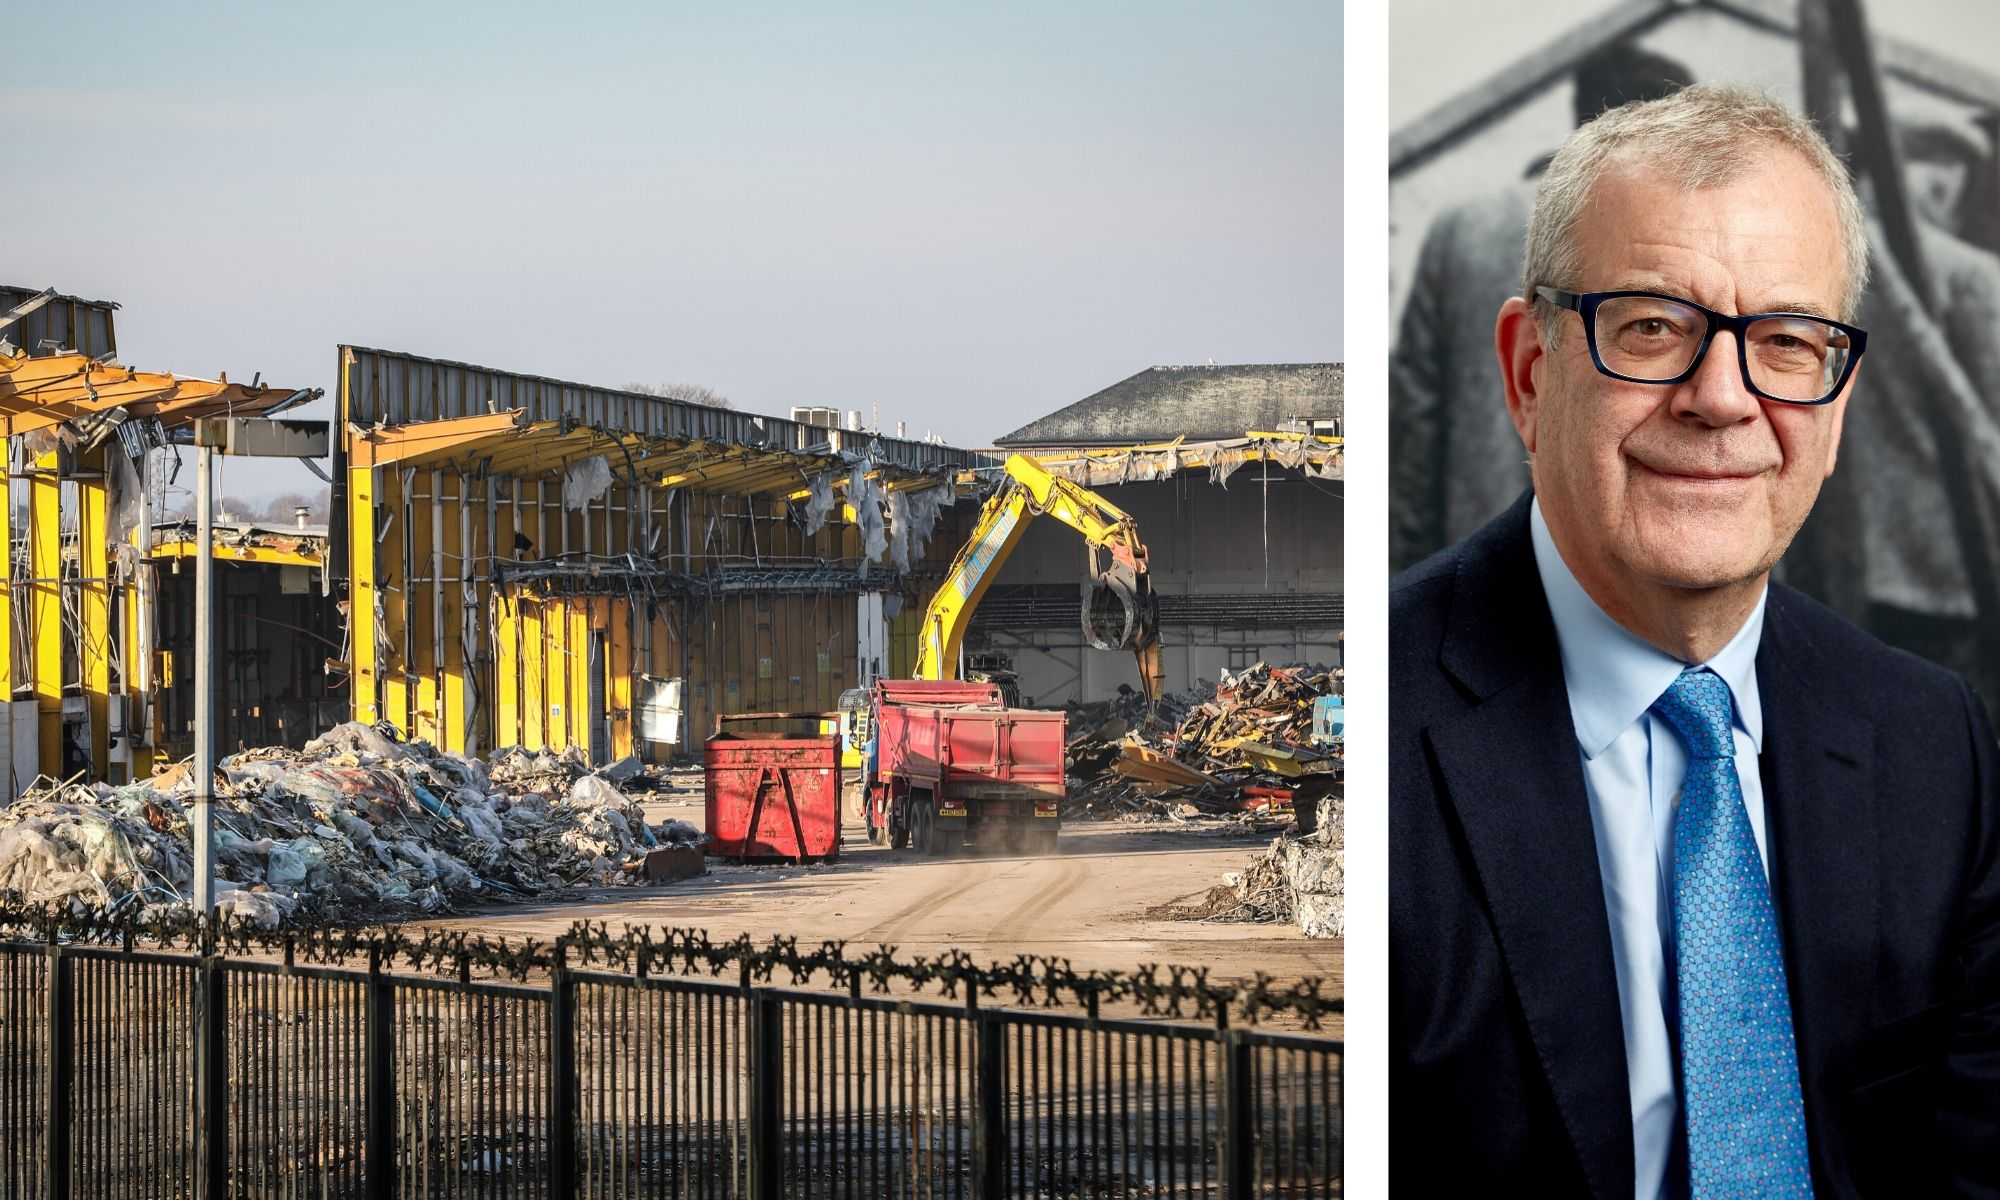 The site of the now-demolished Baird Avenue warehouse, and Wernick Group chair David Wernick.